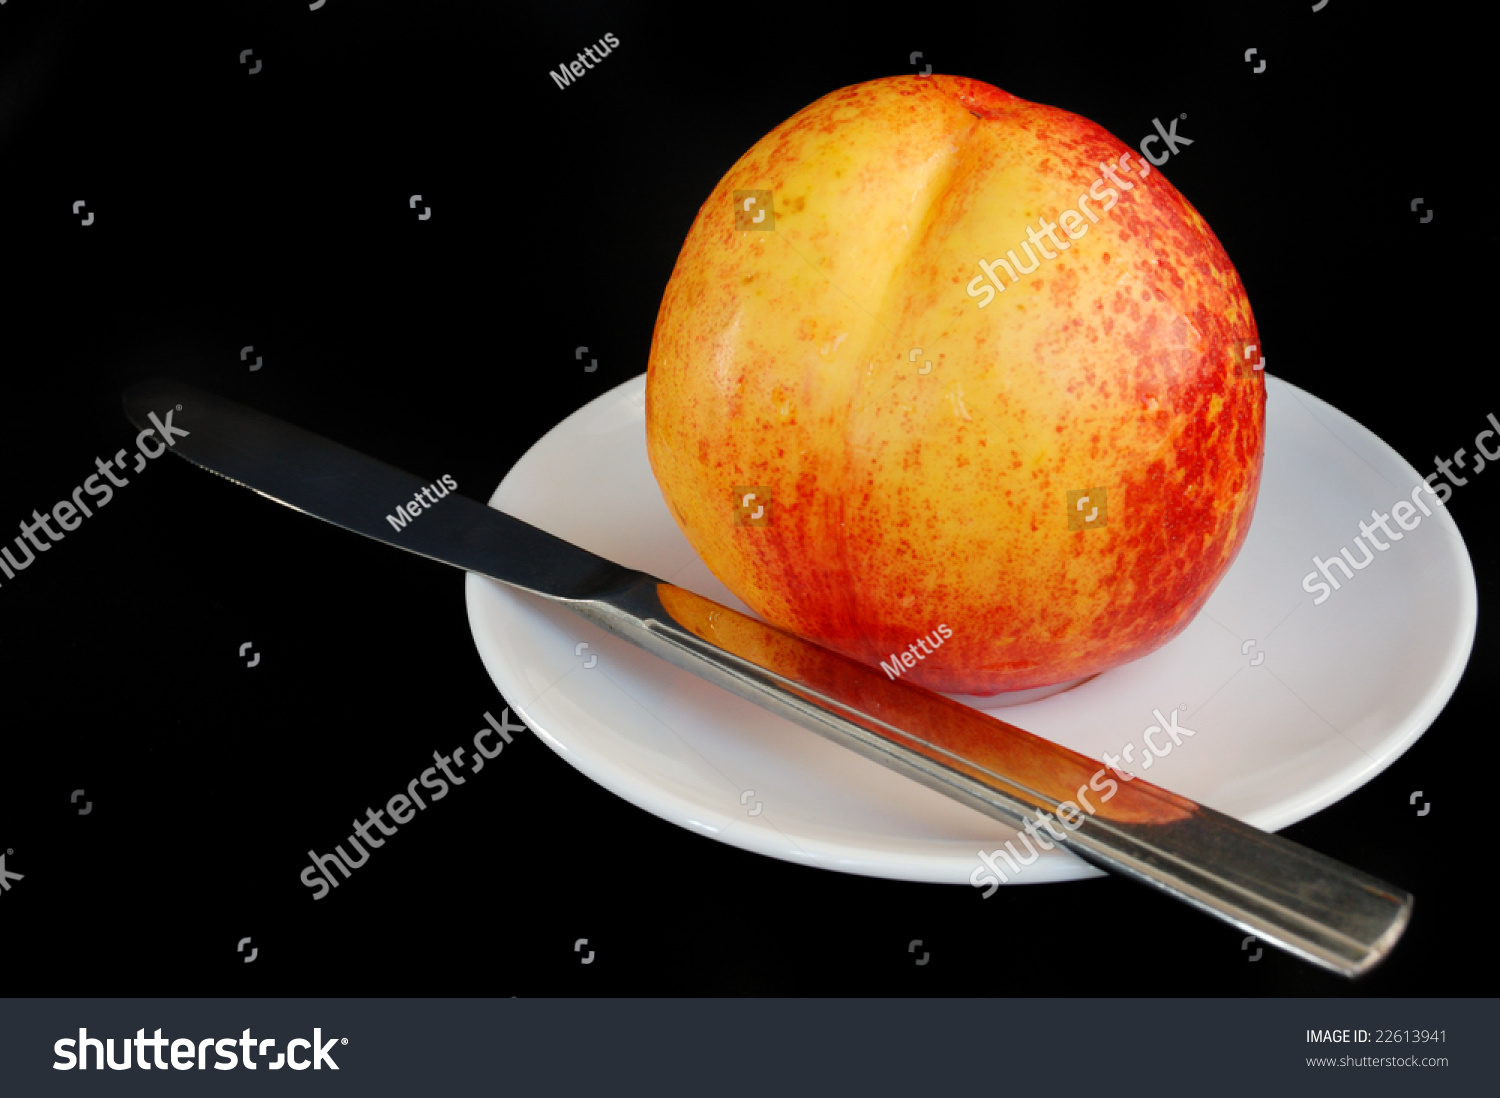 stock-photo-fresh-peach-on-white-saucer-